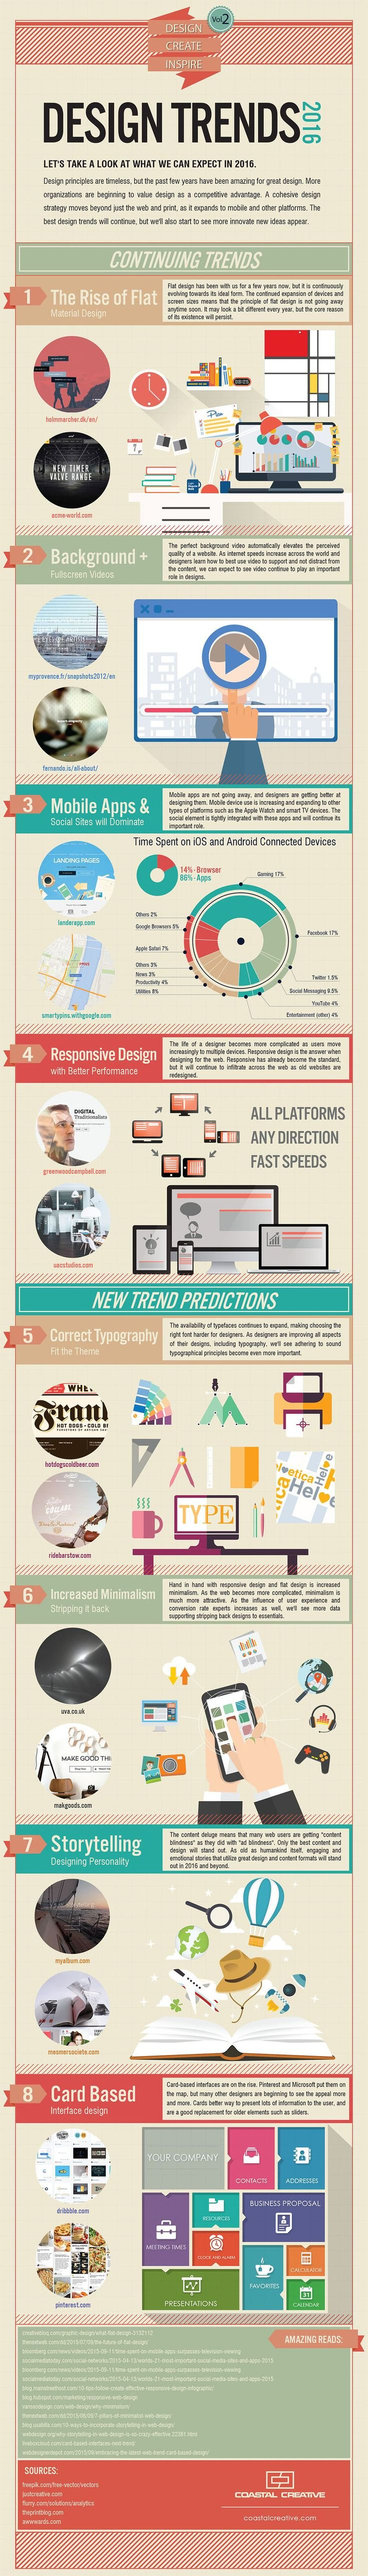 What Are 8 Web Design Trends For 2016? #infographic